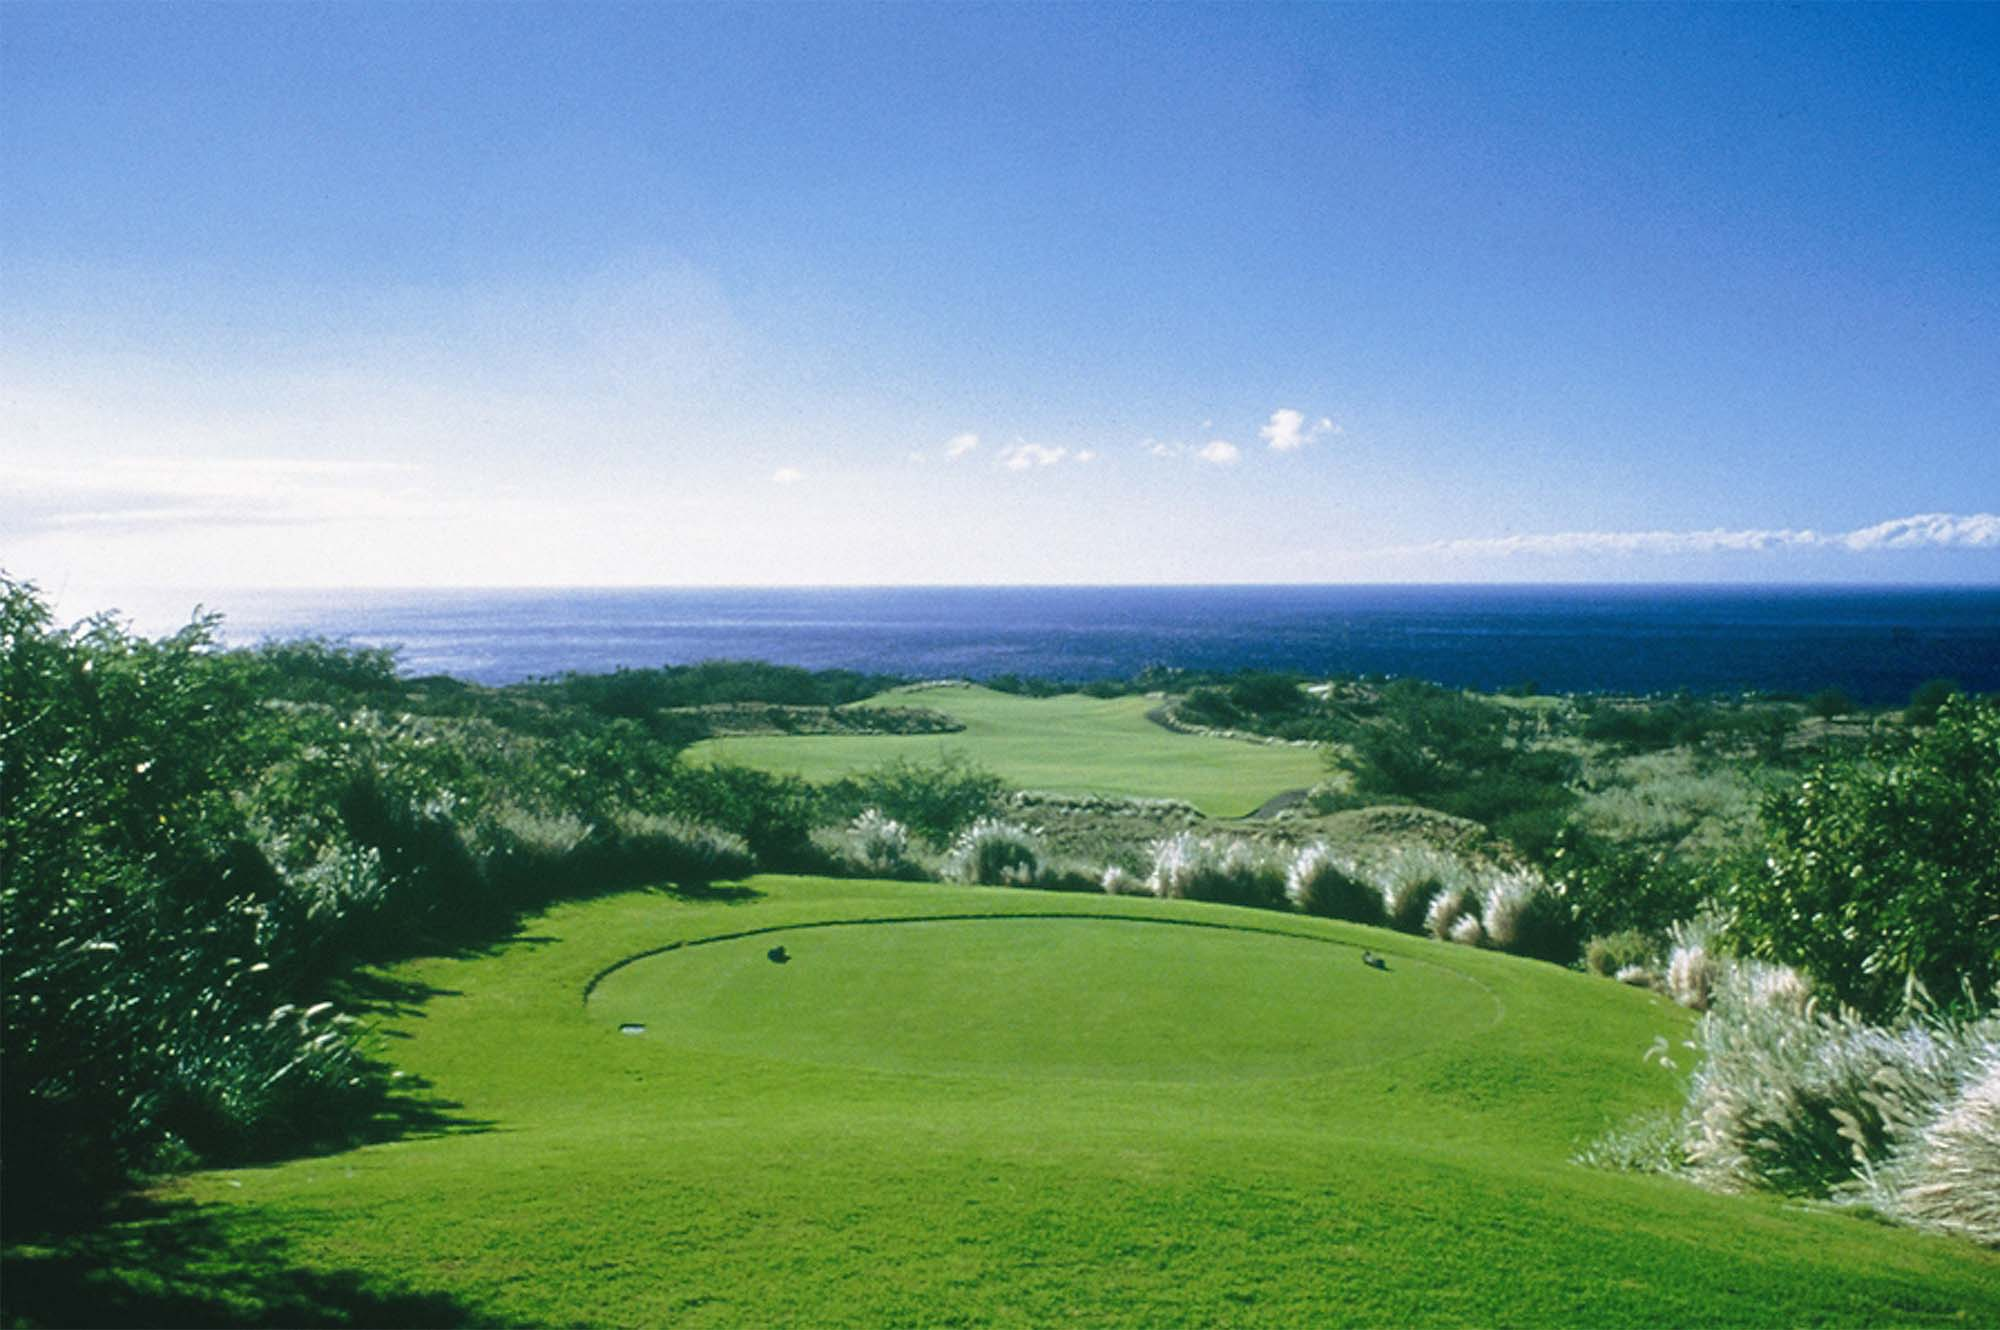 Hapuna Beach Prince Hotel Is Nestled In Natural Bluffs Above The Sea Golf Course